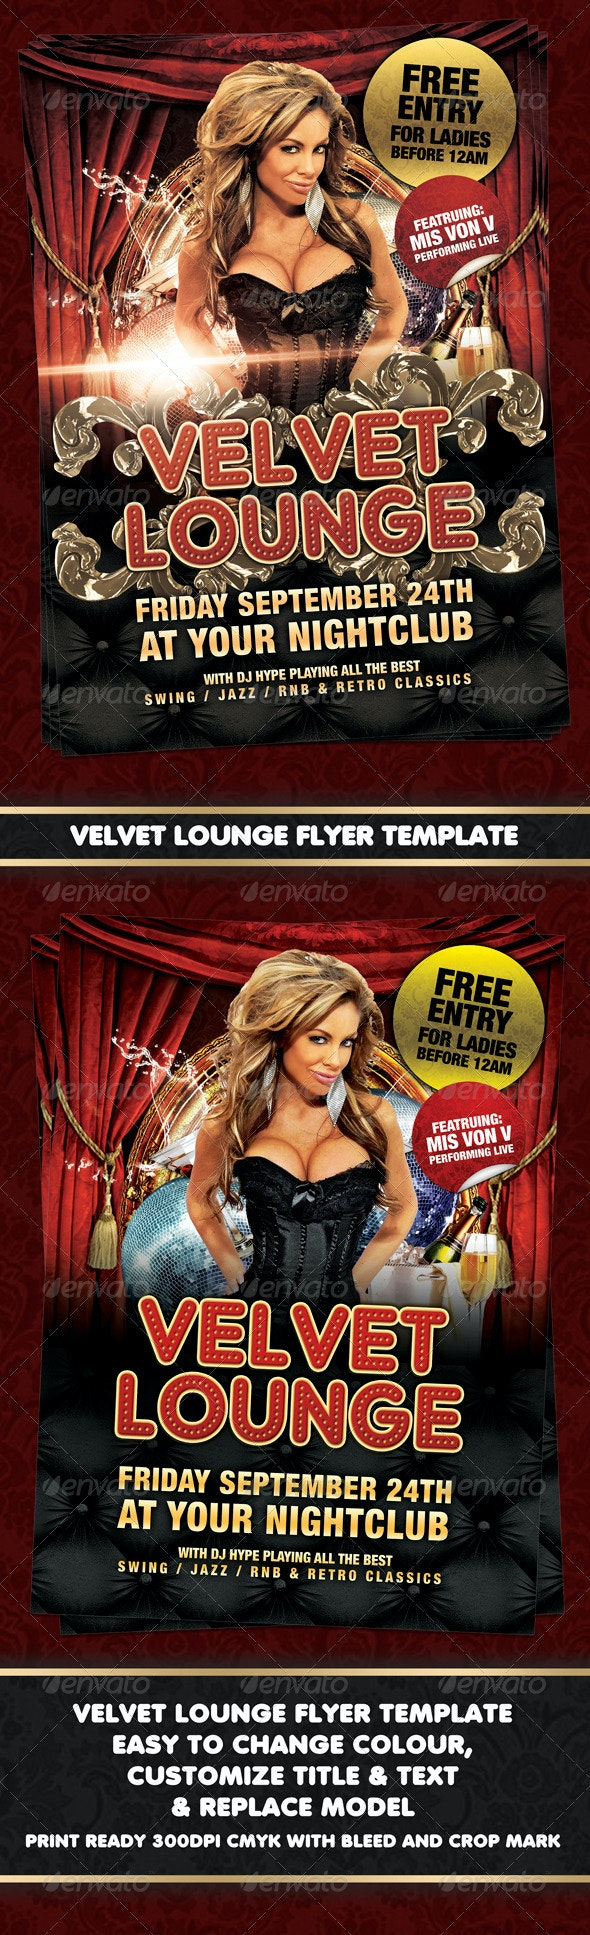 Velvet Lounge Poster or Flyer Template - Clubs & Parties Events